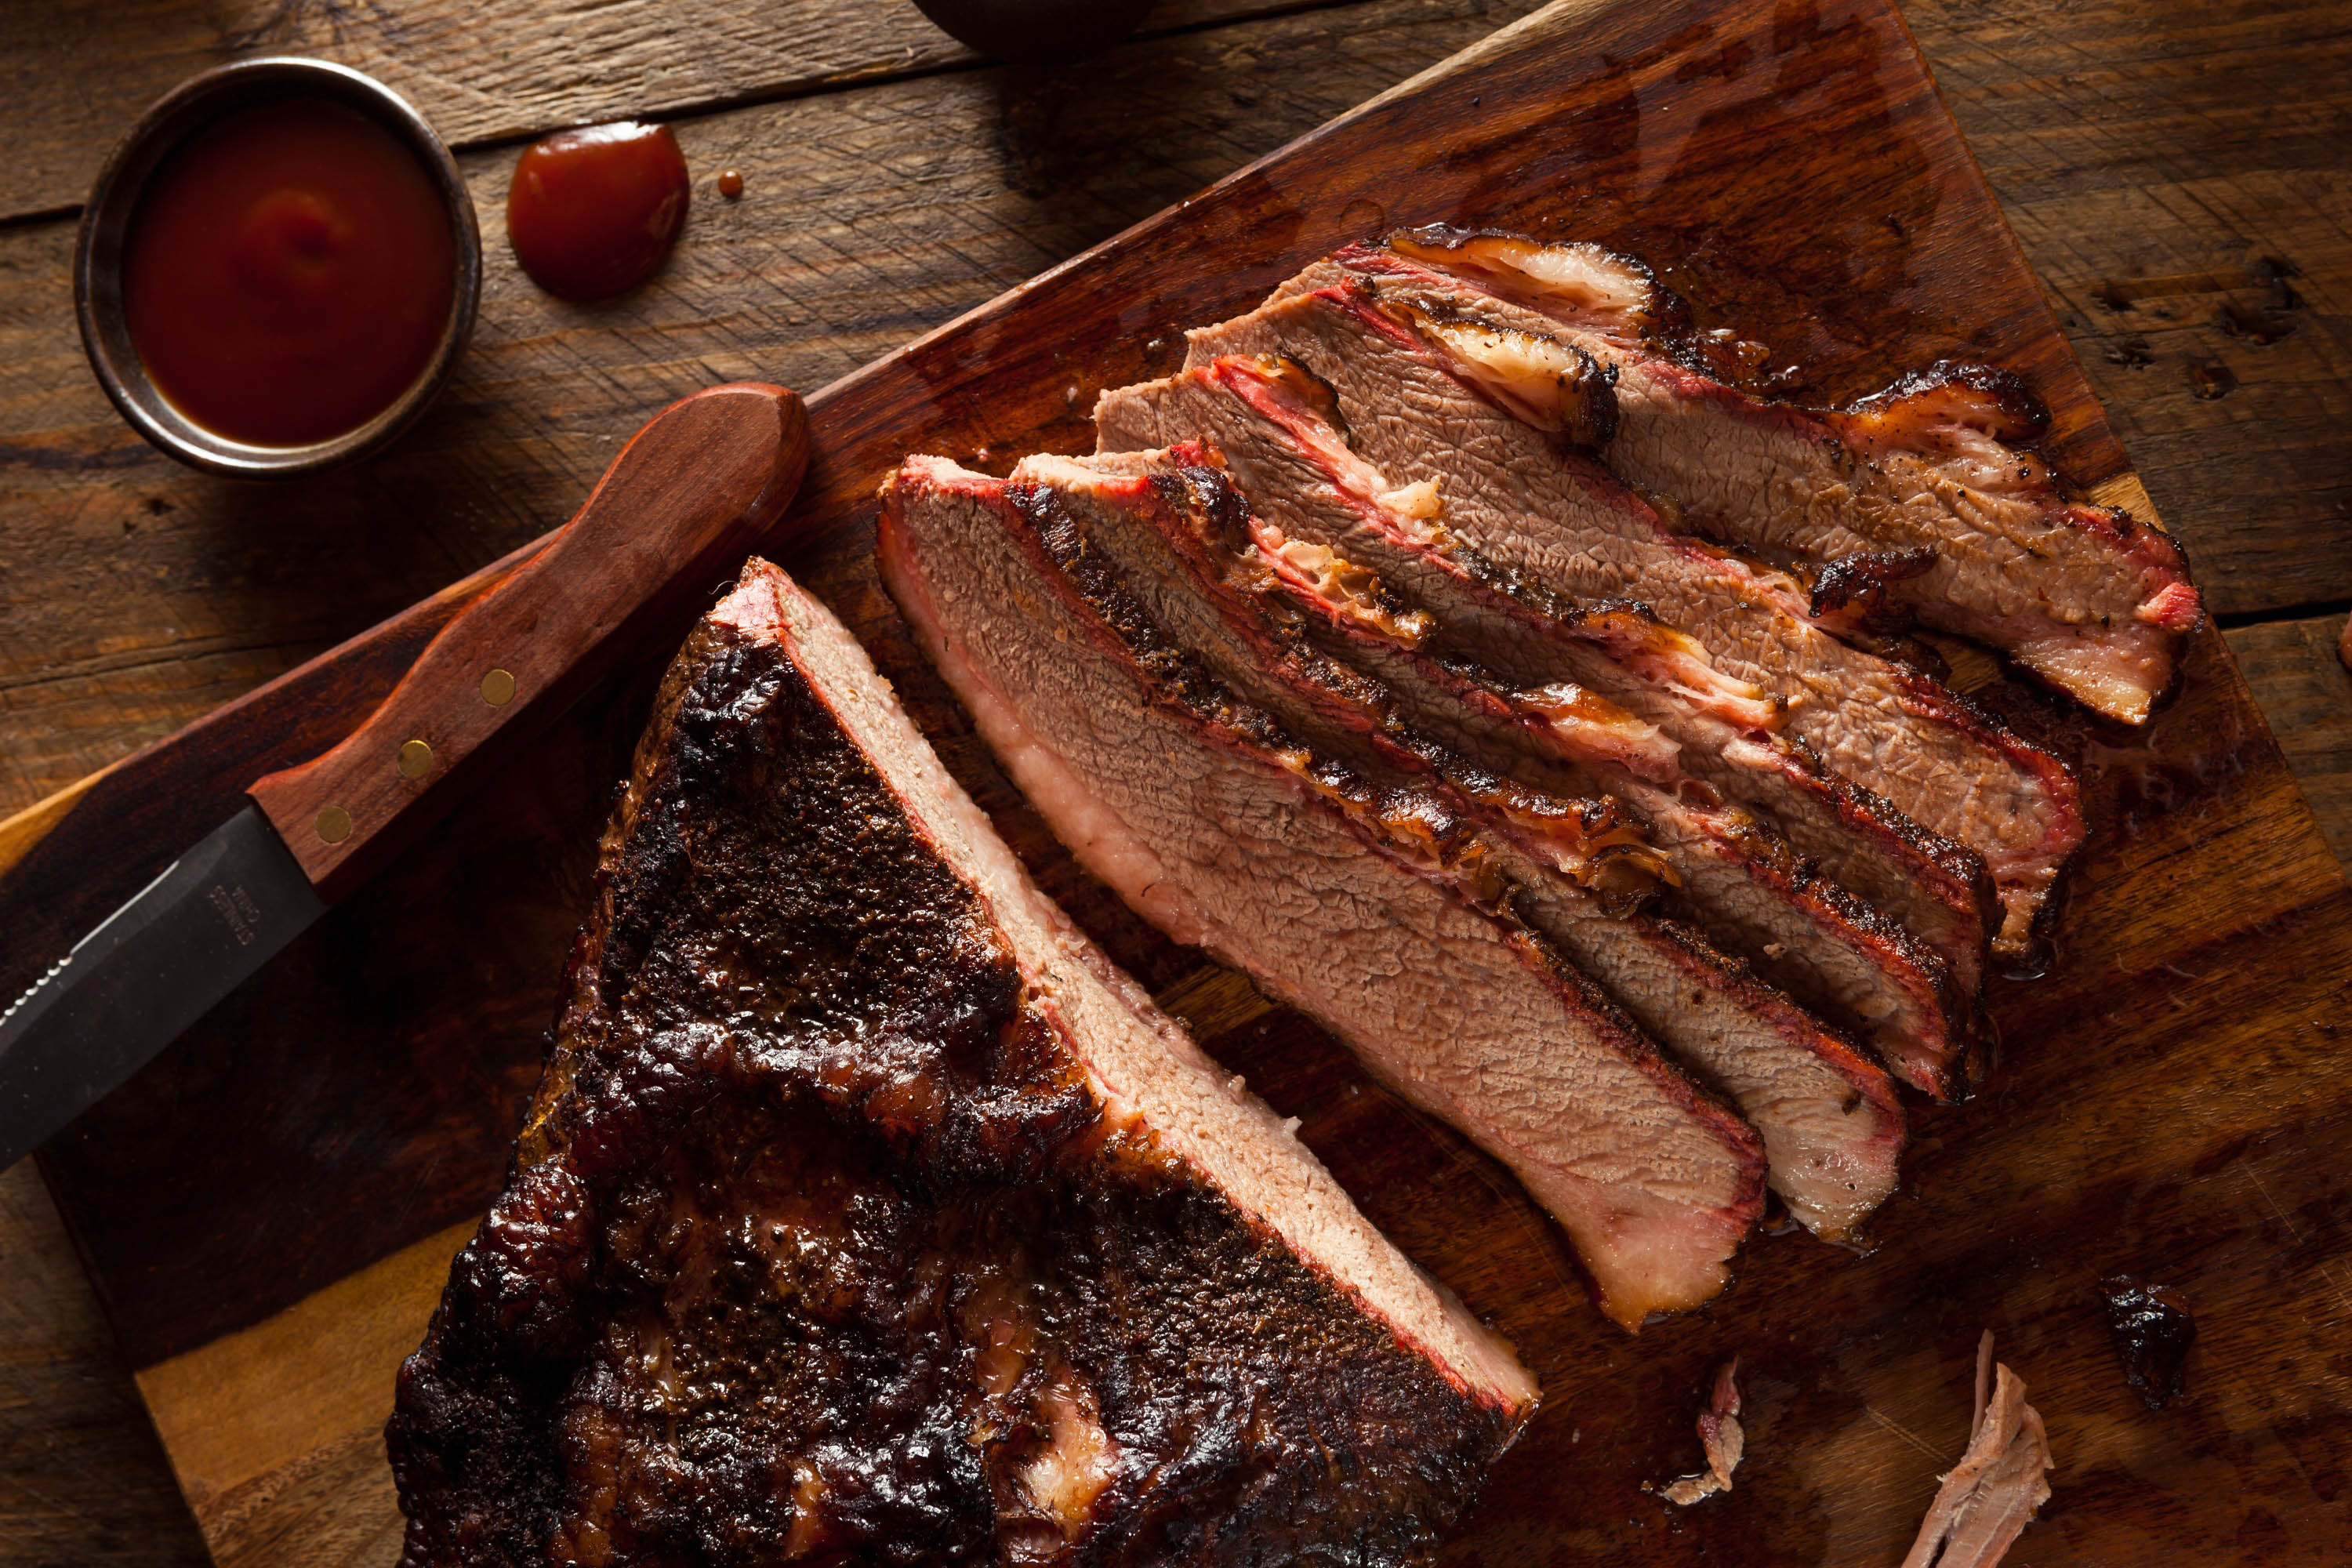 Sliced beef brisket on a wooden board with a small container of BBQ sauce